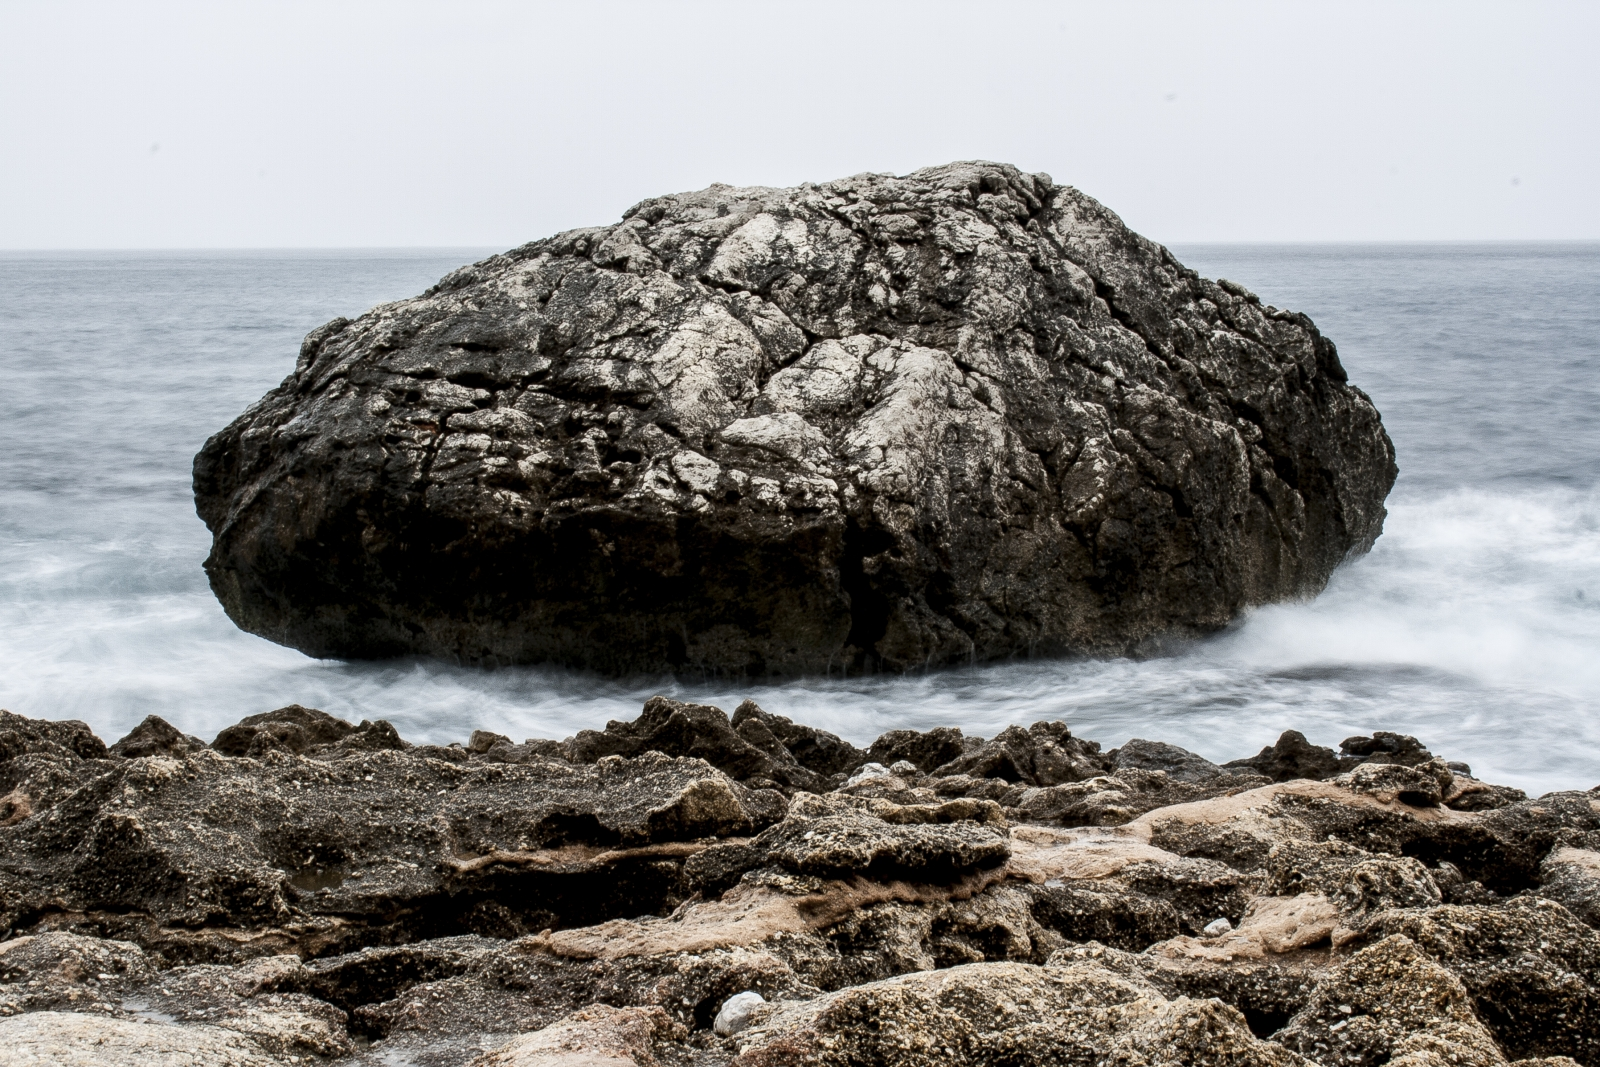 'Floating rock'